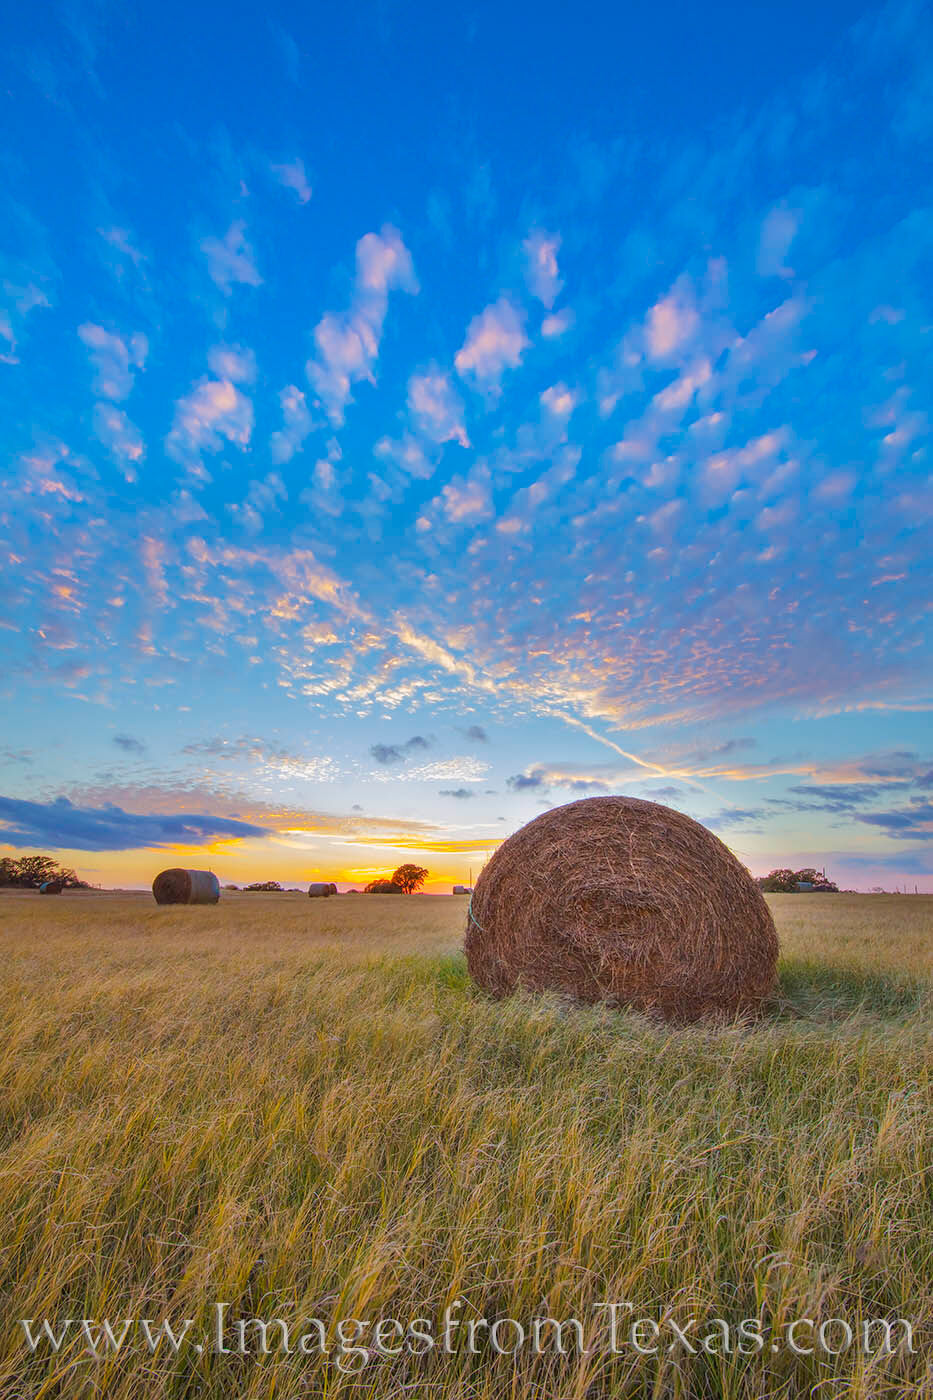 On a cool November evening, the sky adds a subtle magnificence to a pature with hay bales ready for the winter.